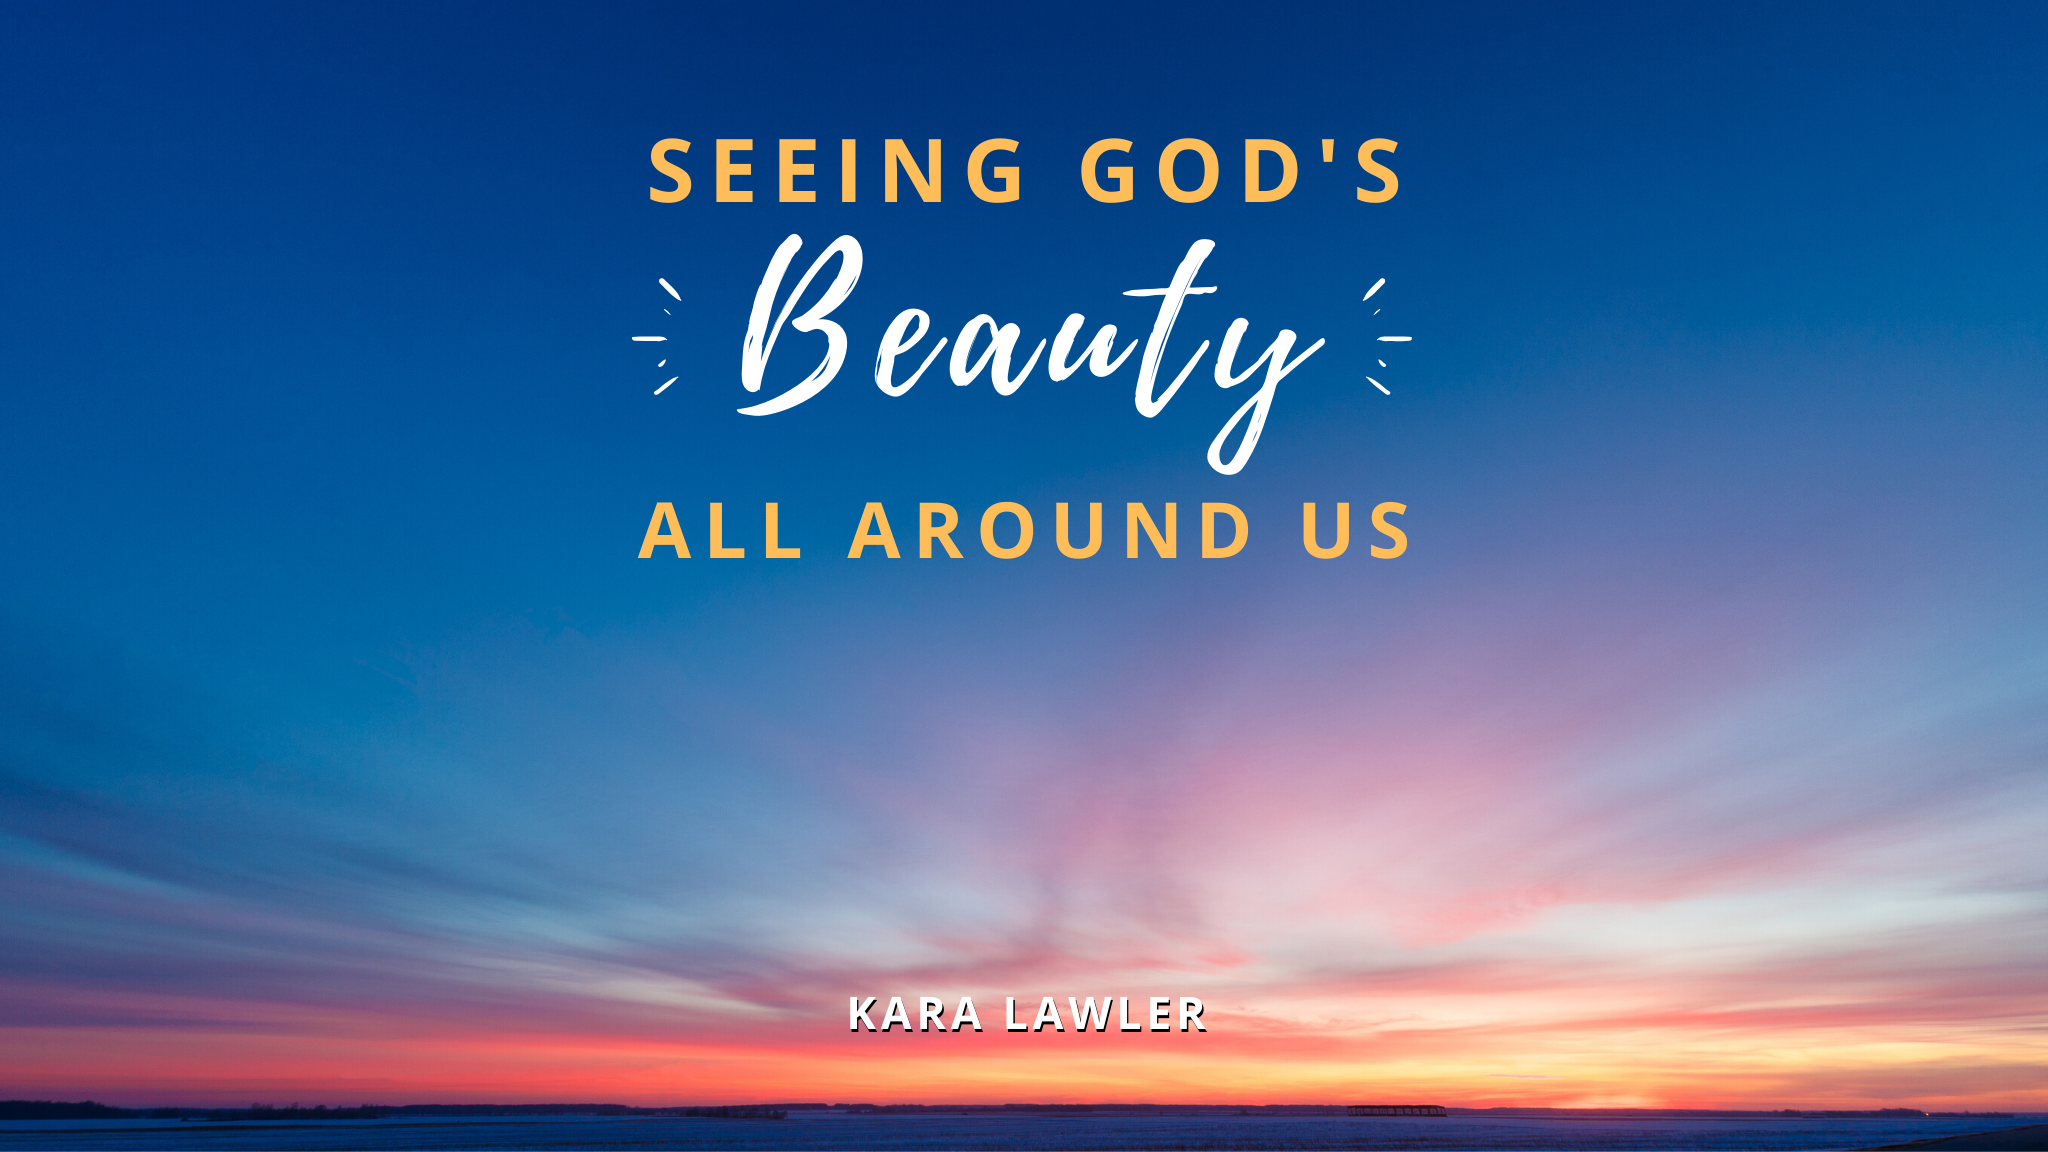 Seeing God's Beauty All Around Us Jesus Calling blog post by Kara Lawler